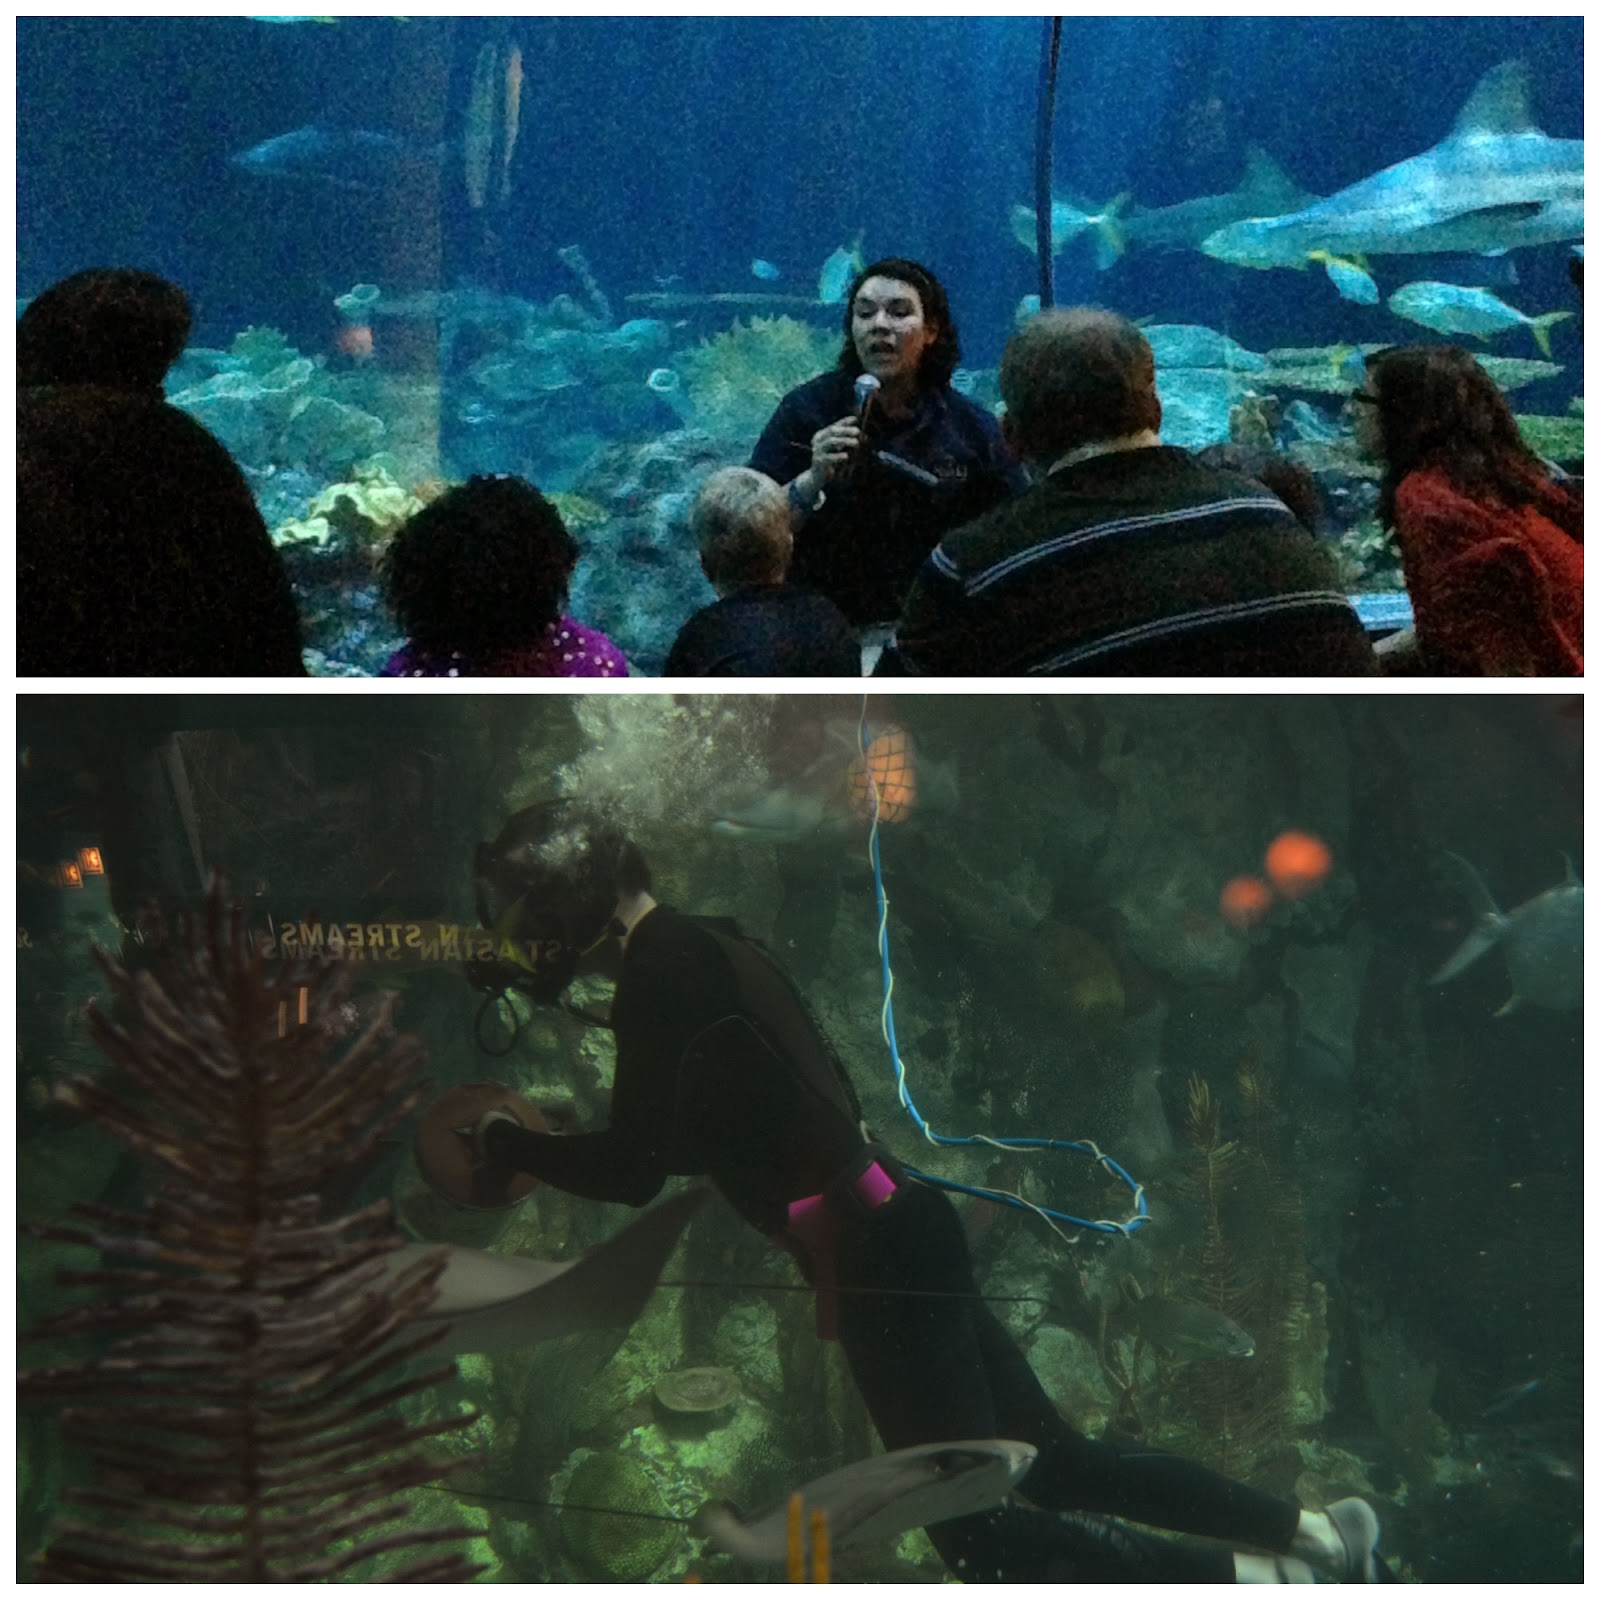 Trainer and Diver Chats at Shedd Aquarium in Chicago